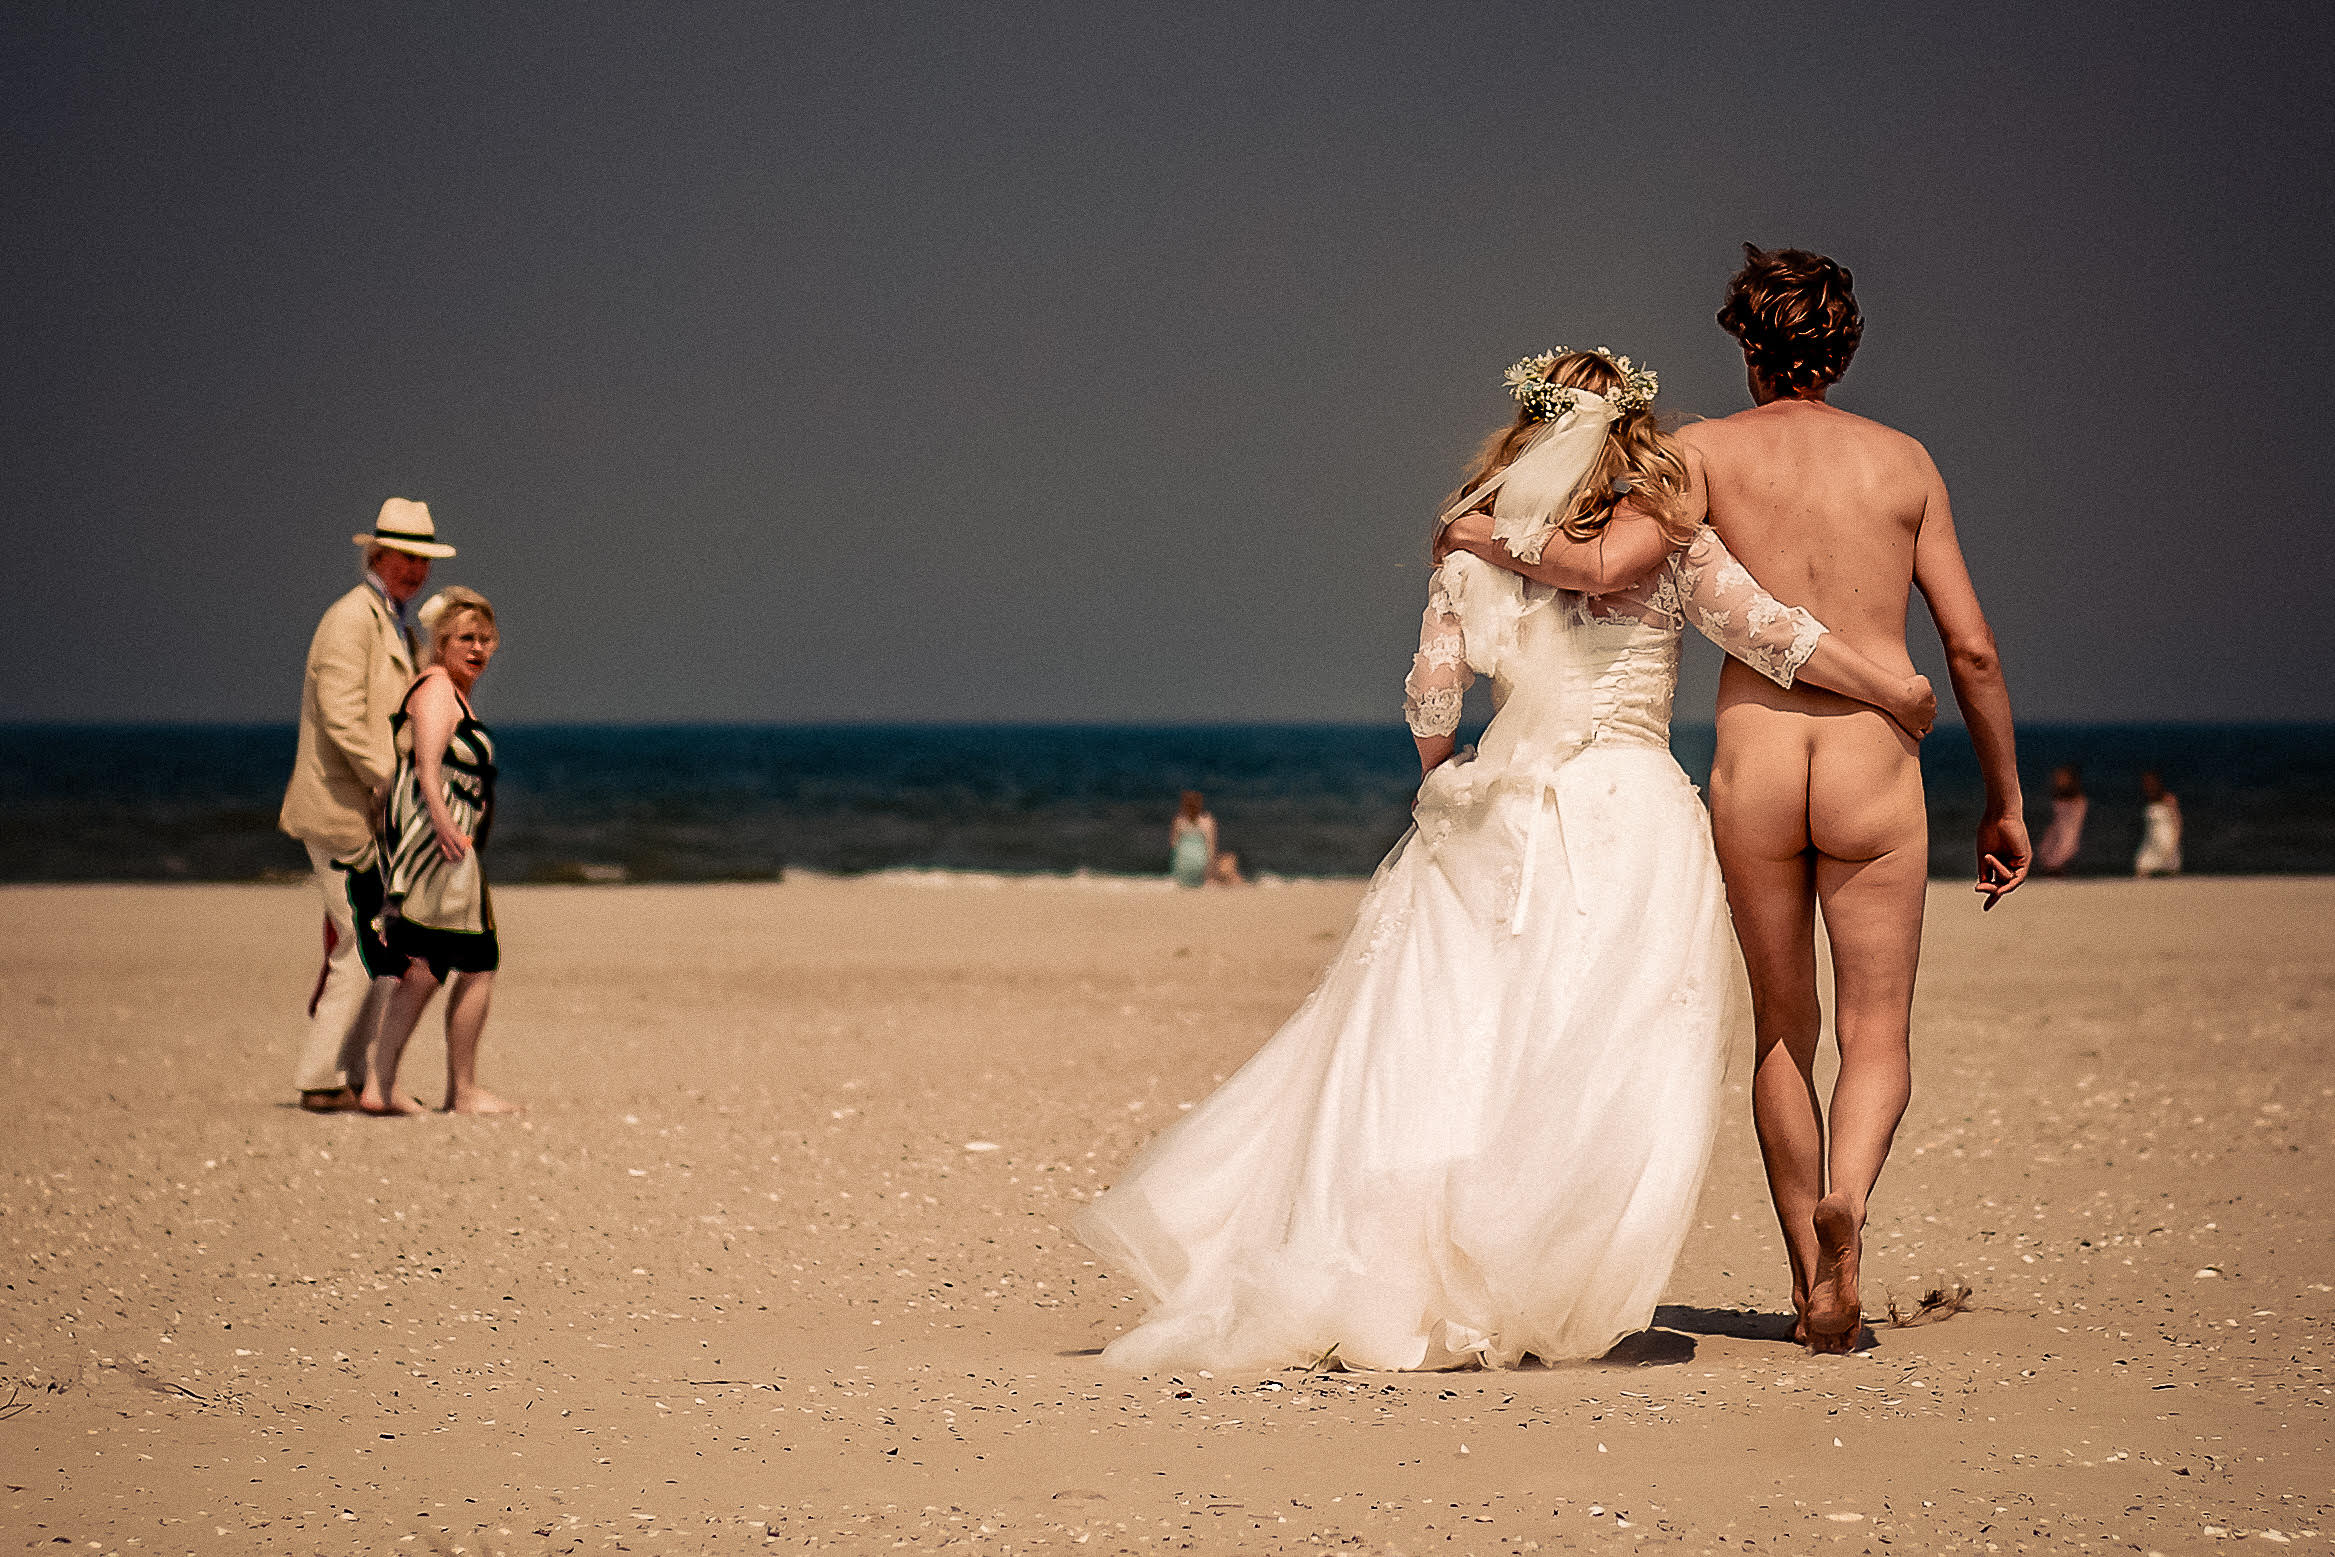 groom-wearing-his-birthday-suit-with-bride-on-beach-eppel-photography